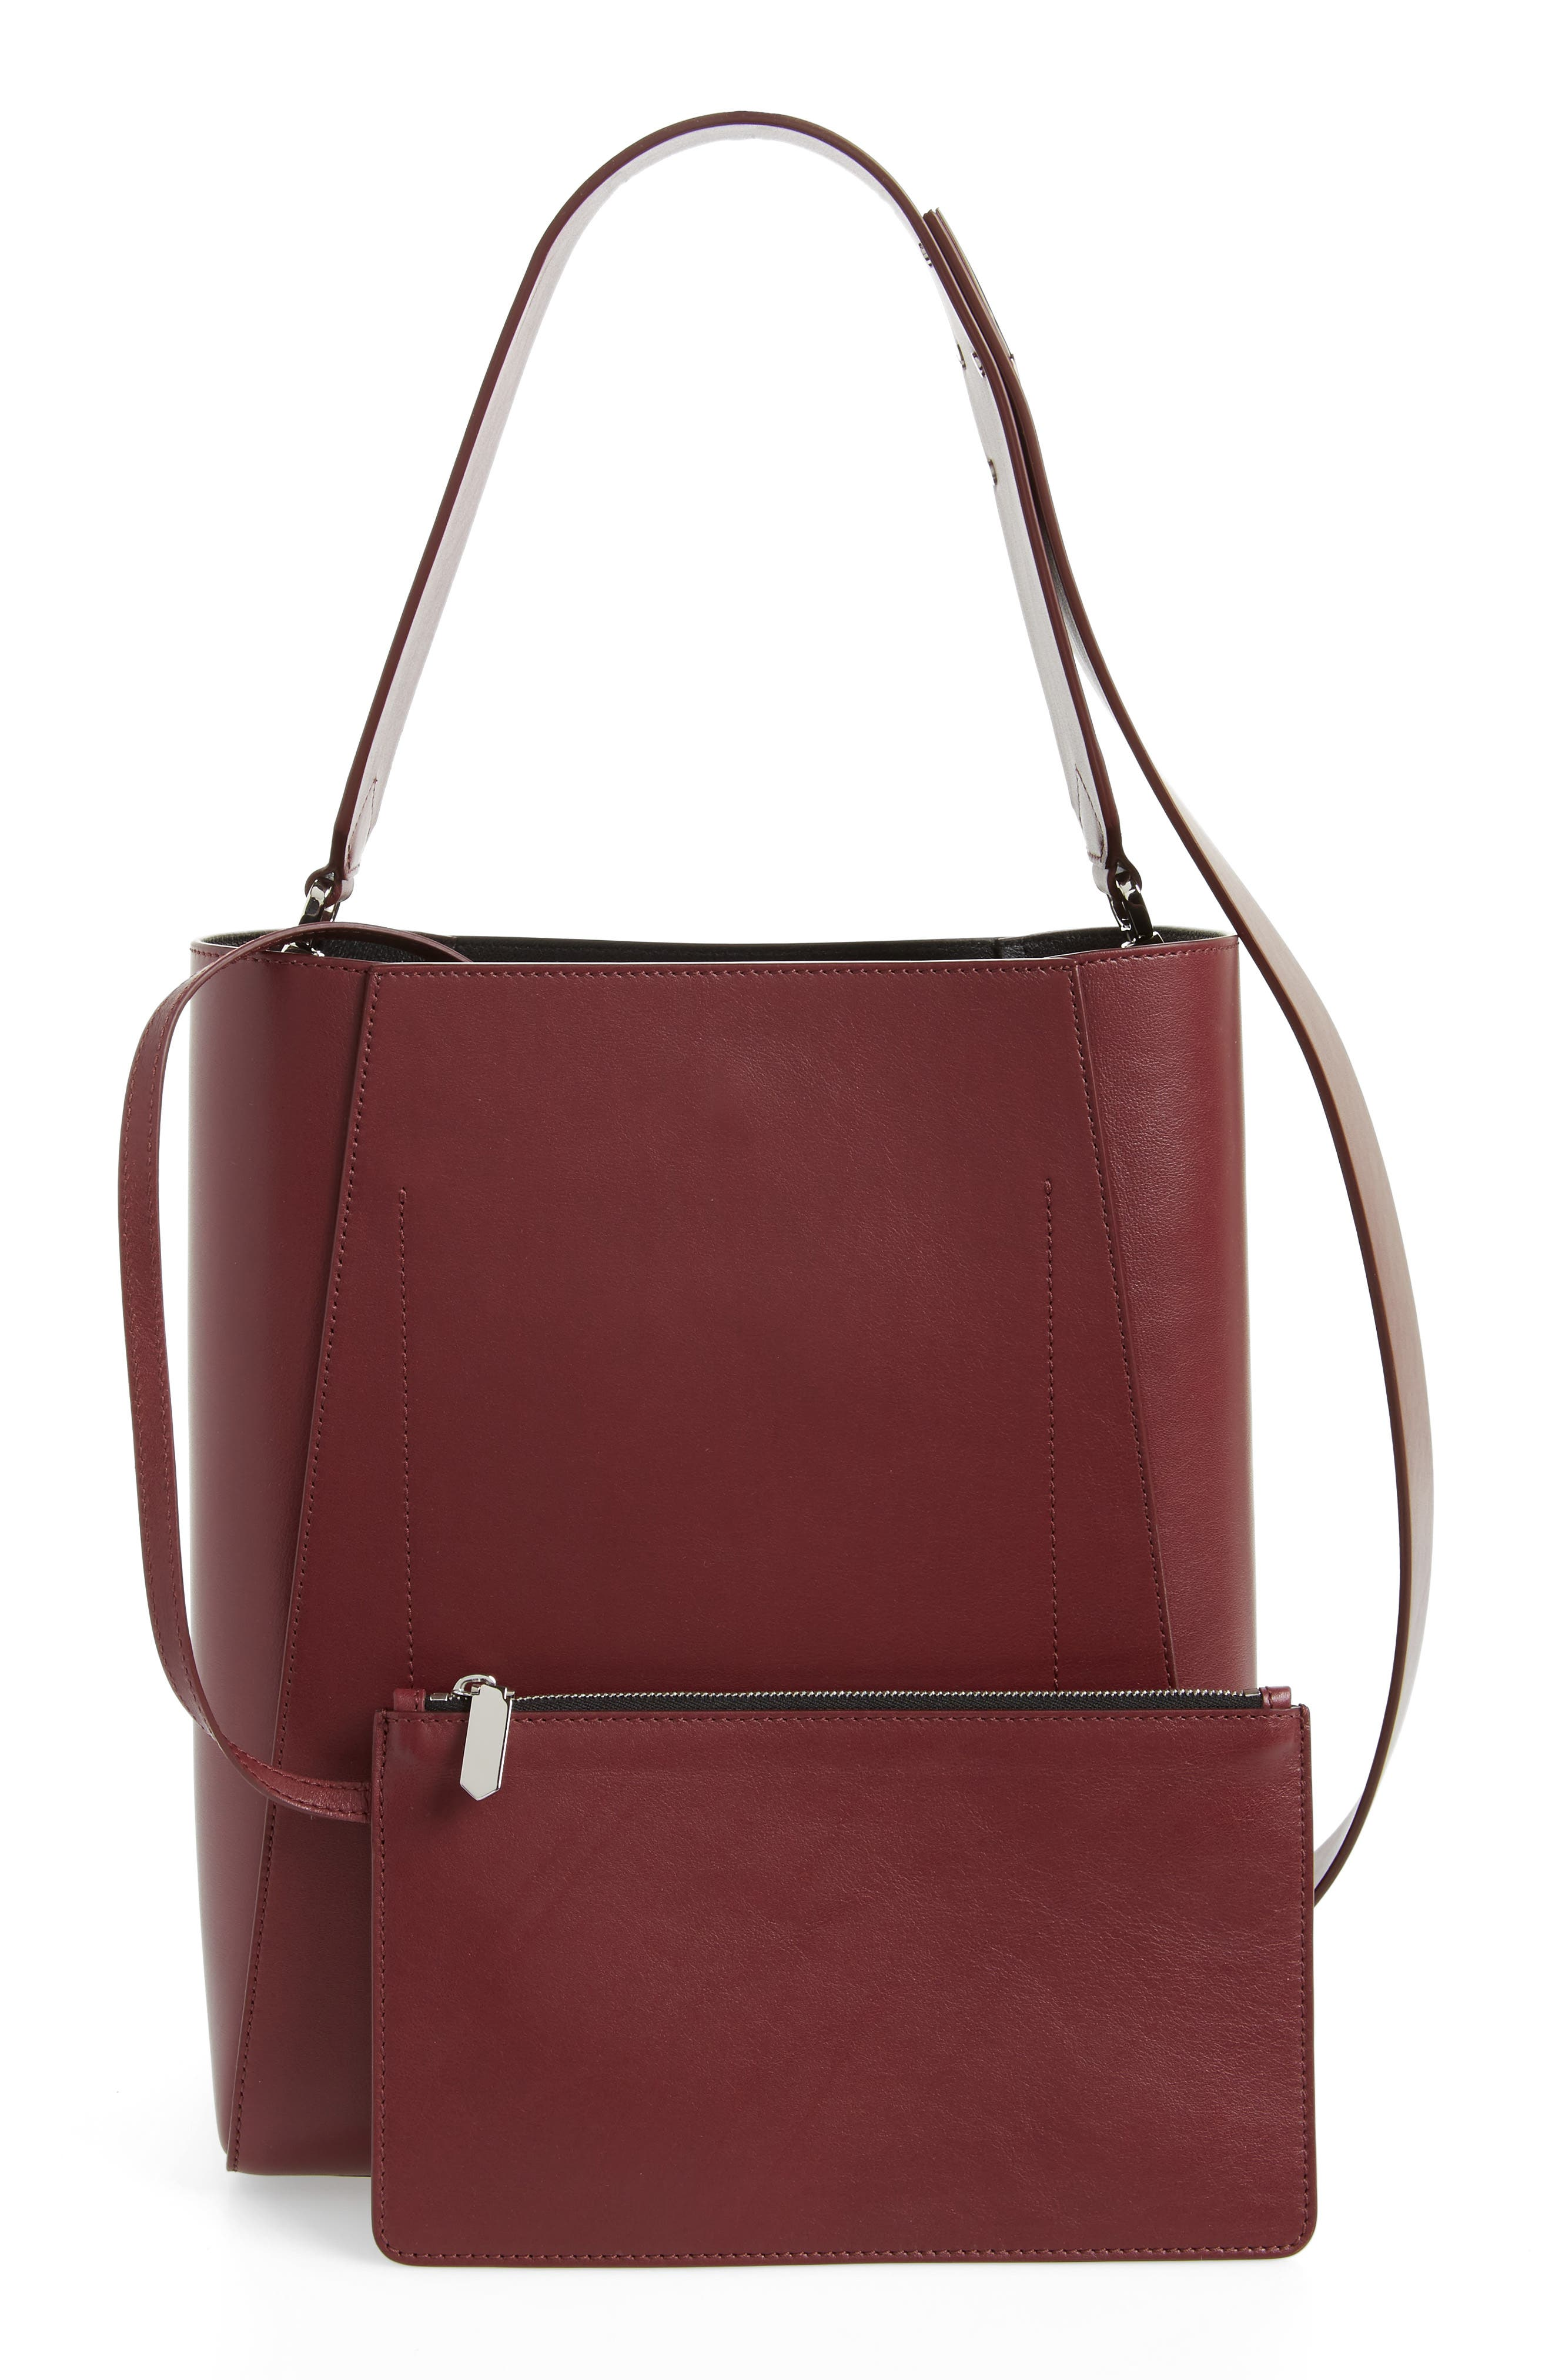 Alternate Image 3  - CALVIN KLEIN 205W39NYC Medium Calfskin Leather Bucket Bag with Removable Pouch